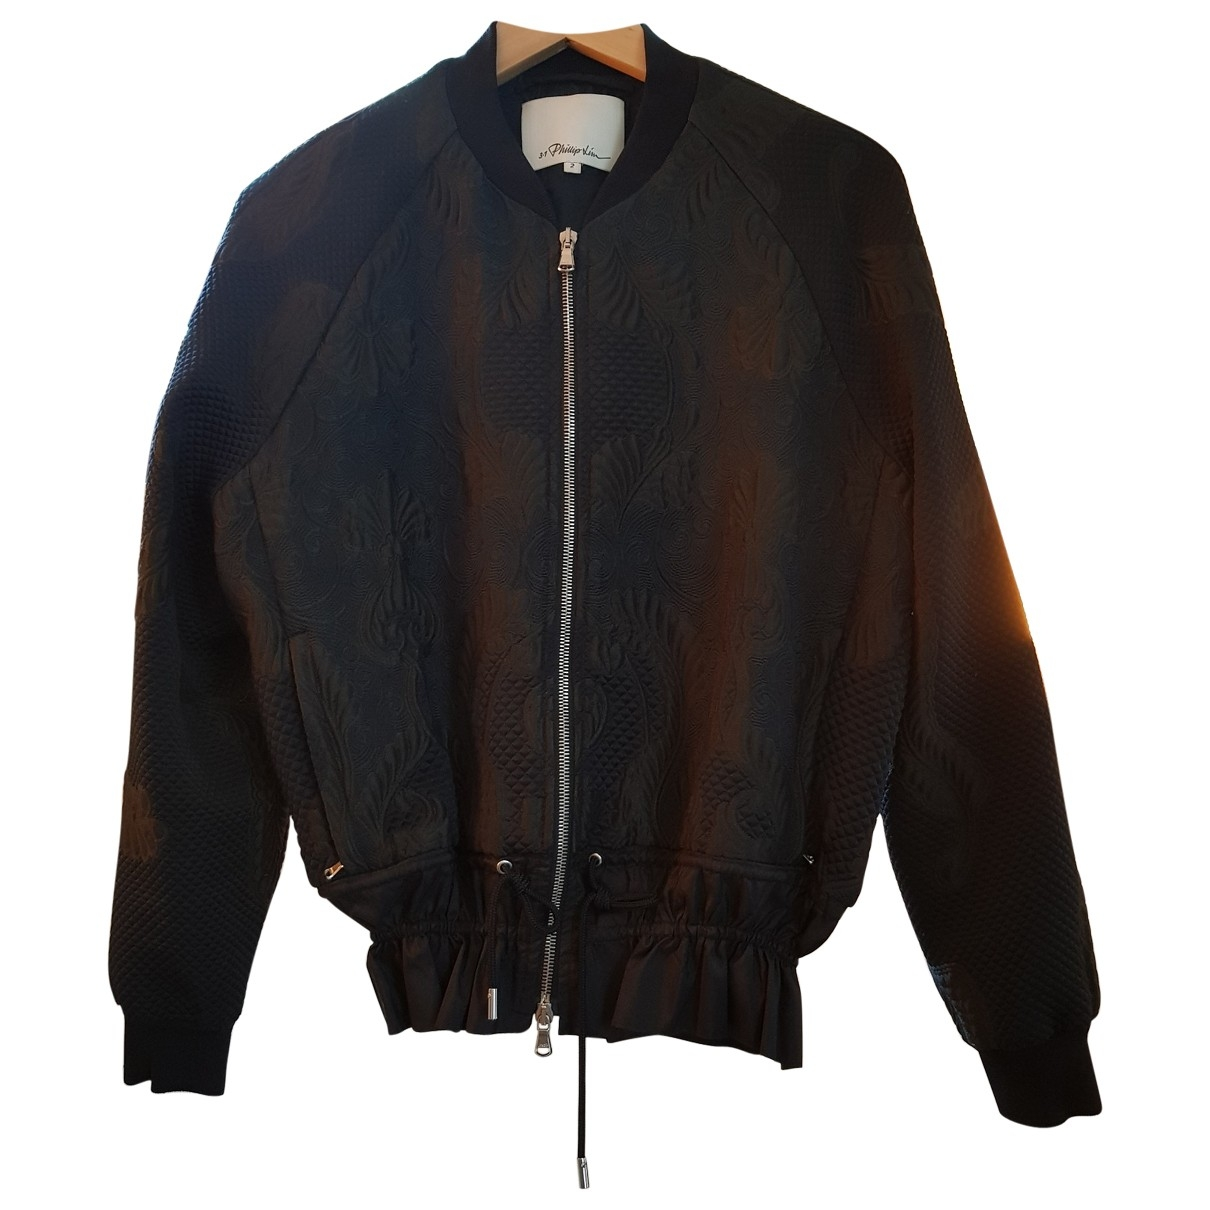 3.1 Phillip Lim \N Black Leather jacket for Women 36 FR